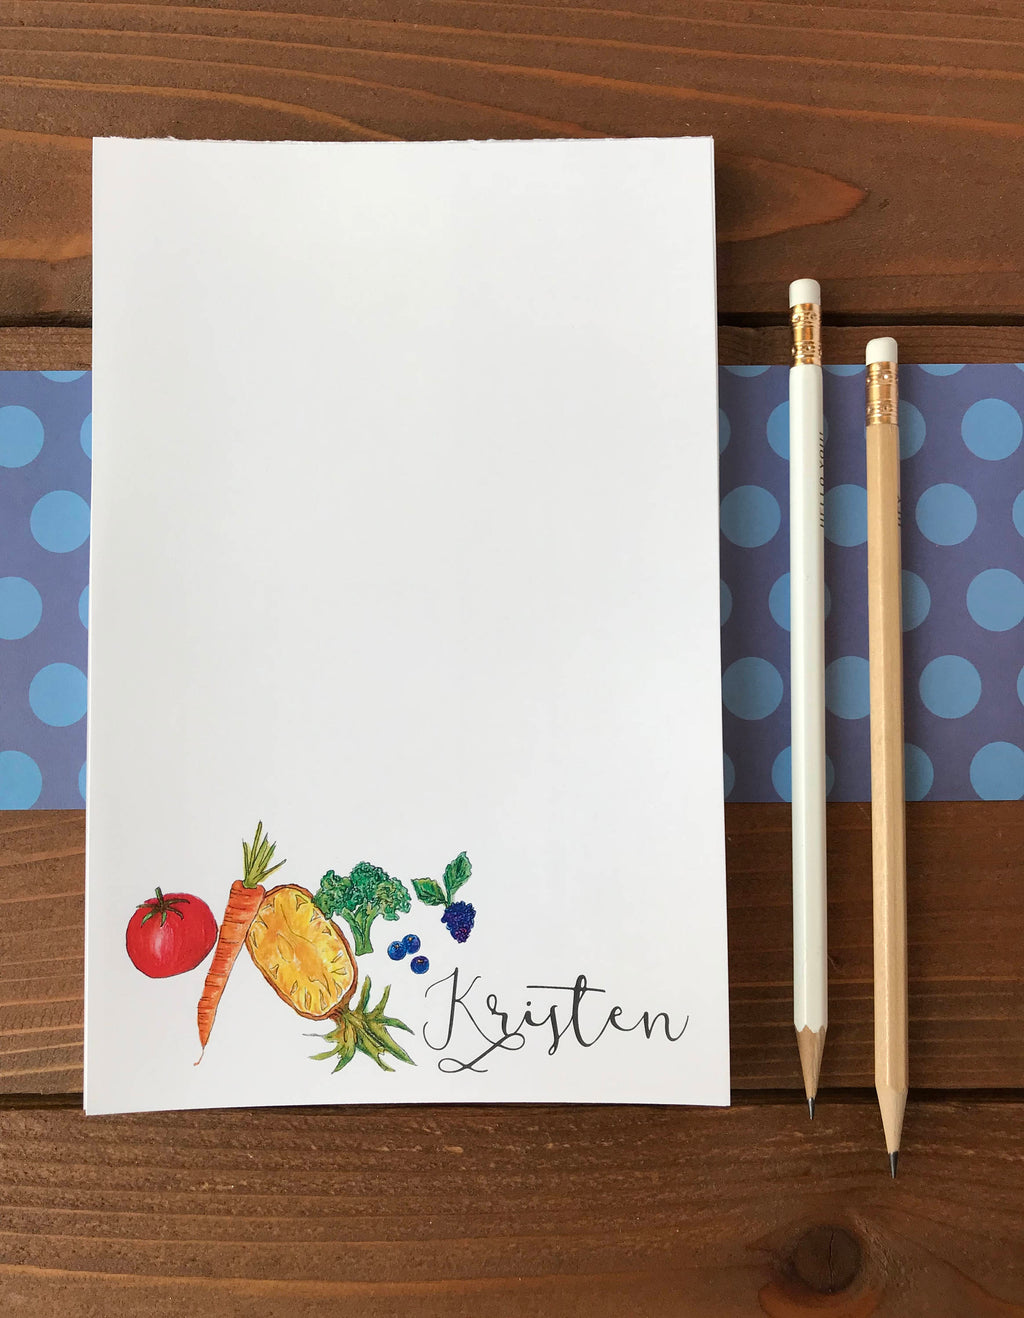 Rainbow Fruit Notepad - Personalized Kitchen Gift for Cook - 5.5 x 8.5